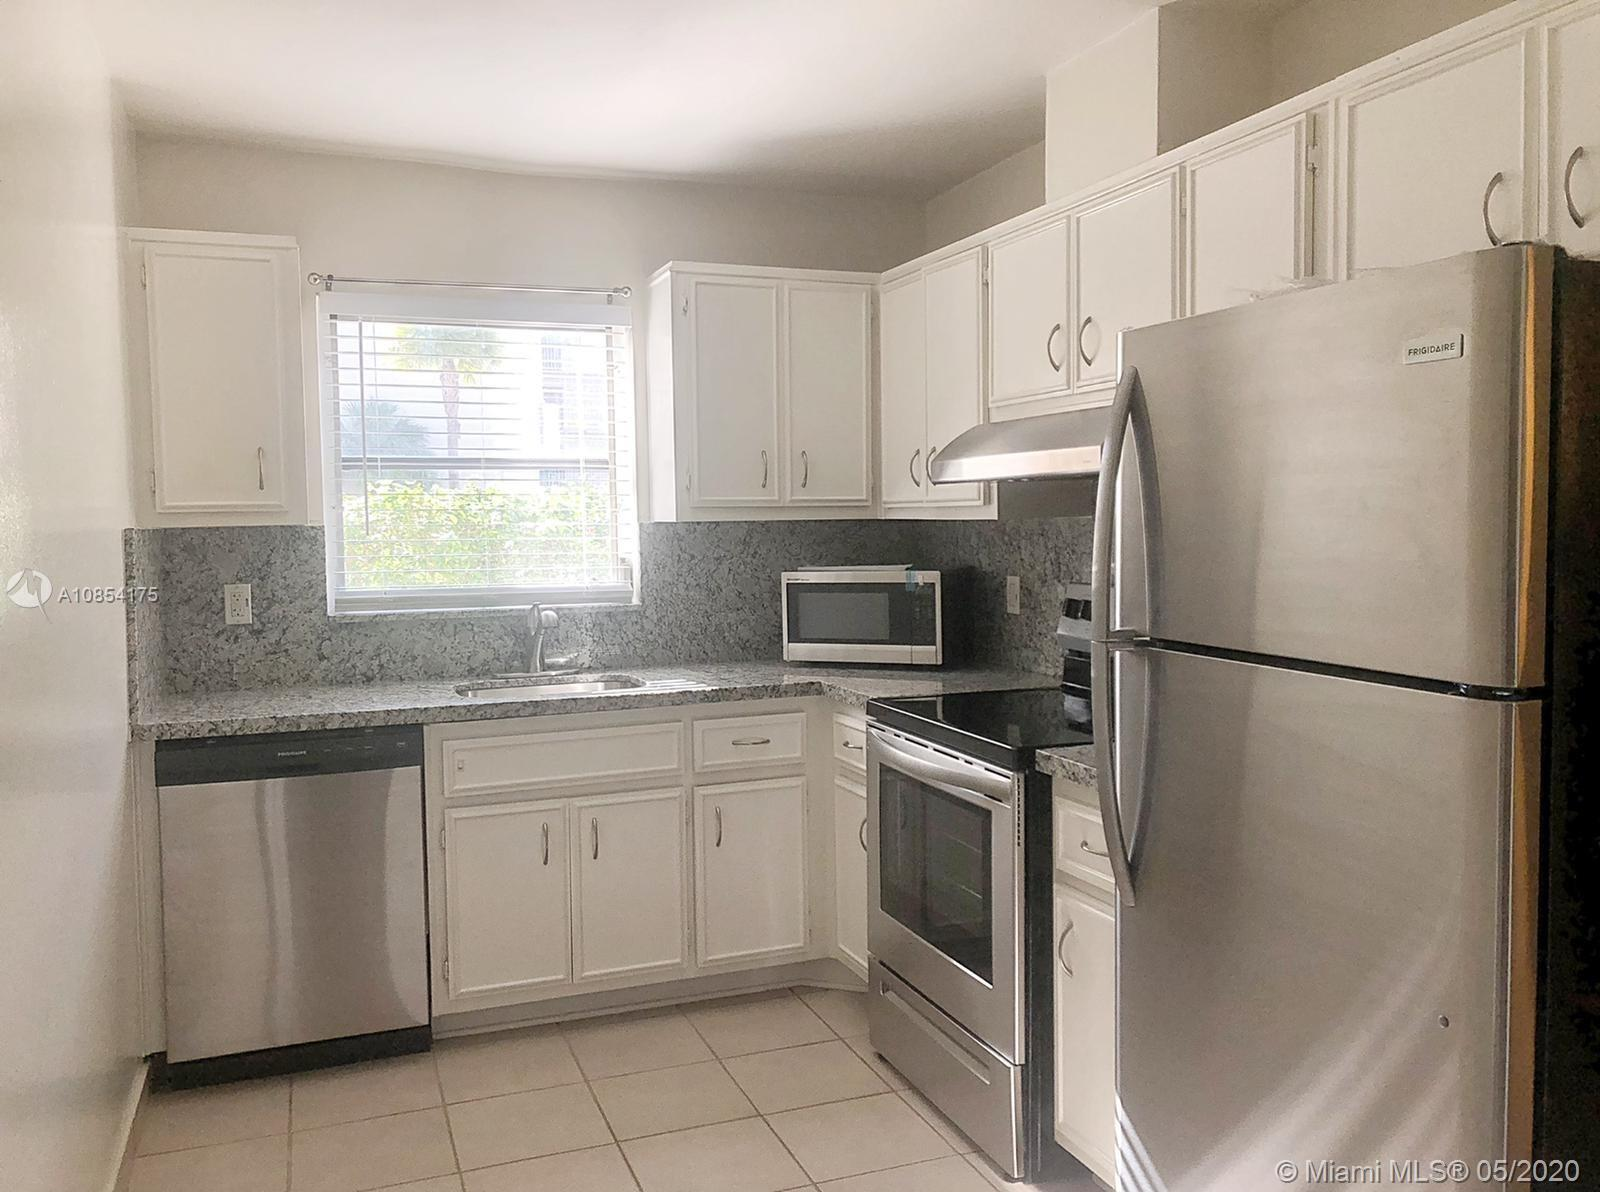 Nicely partially remodeled 1 / 1.5 unit in a well kept gated community. Unit was recently remodeled and features new stainless steel appliances, granite counter tops, new modern white window treatment, new light fixtures, new laminate wood floors, new faucet hardware, AC less than 2 years old, and much more. Enjoy an array of amenities such as pool, Jacuzzi, fitness center, tennis courts, club house, health spa, high-speed WiFi in all common areas, and more. Water and Basic cable are included in rent. This unit is centrally located near Downtown Dadeland, Baptist Hospital, Dadeland Mall, Miami Metro, SR 826 (Palmetto), and public transportation.